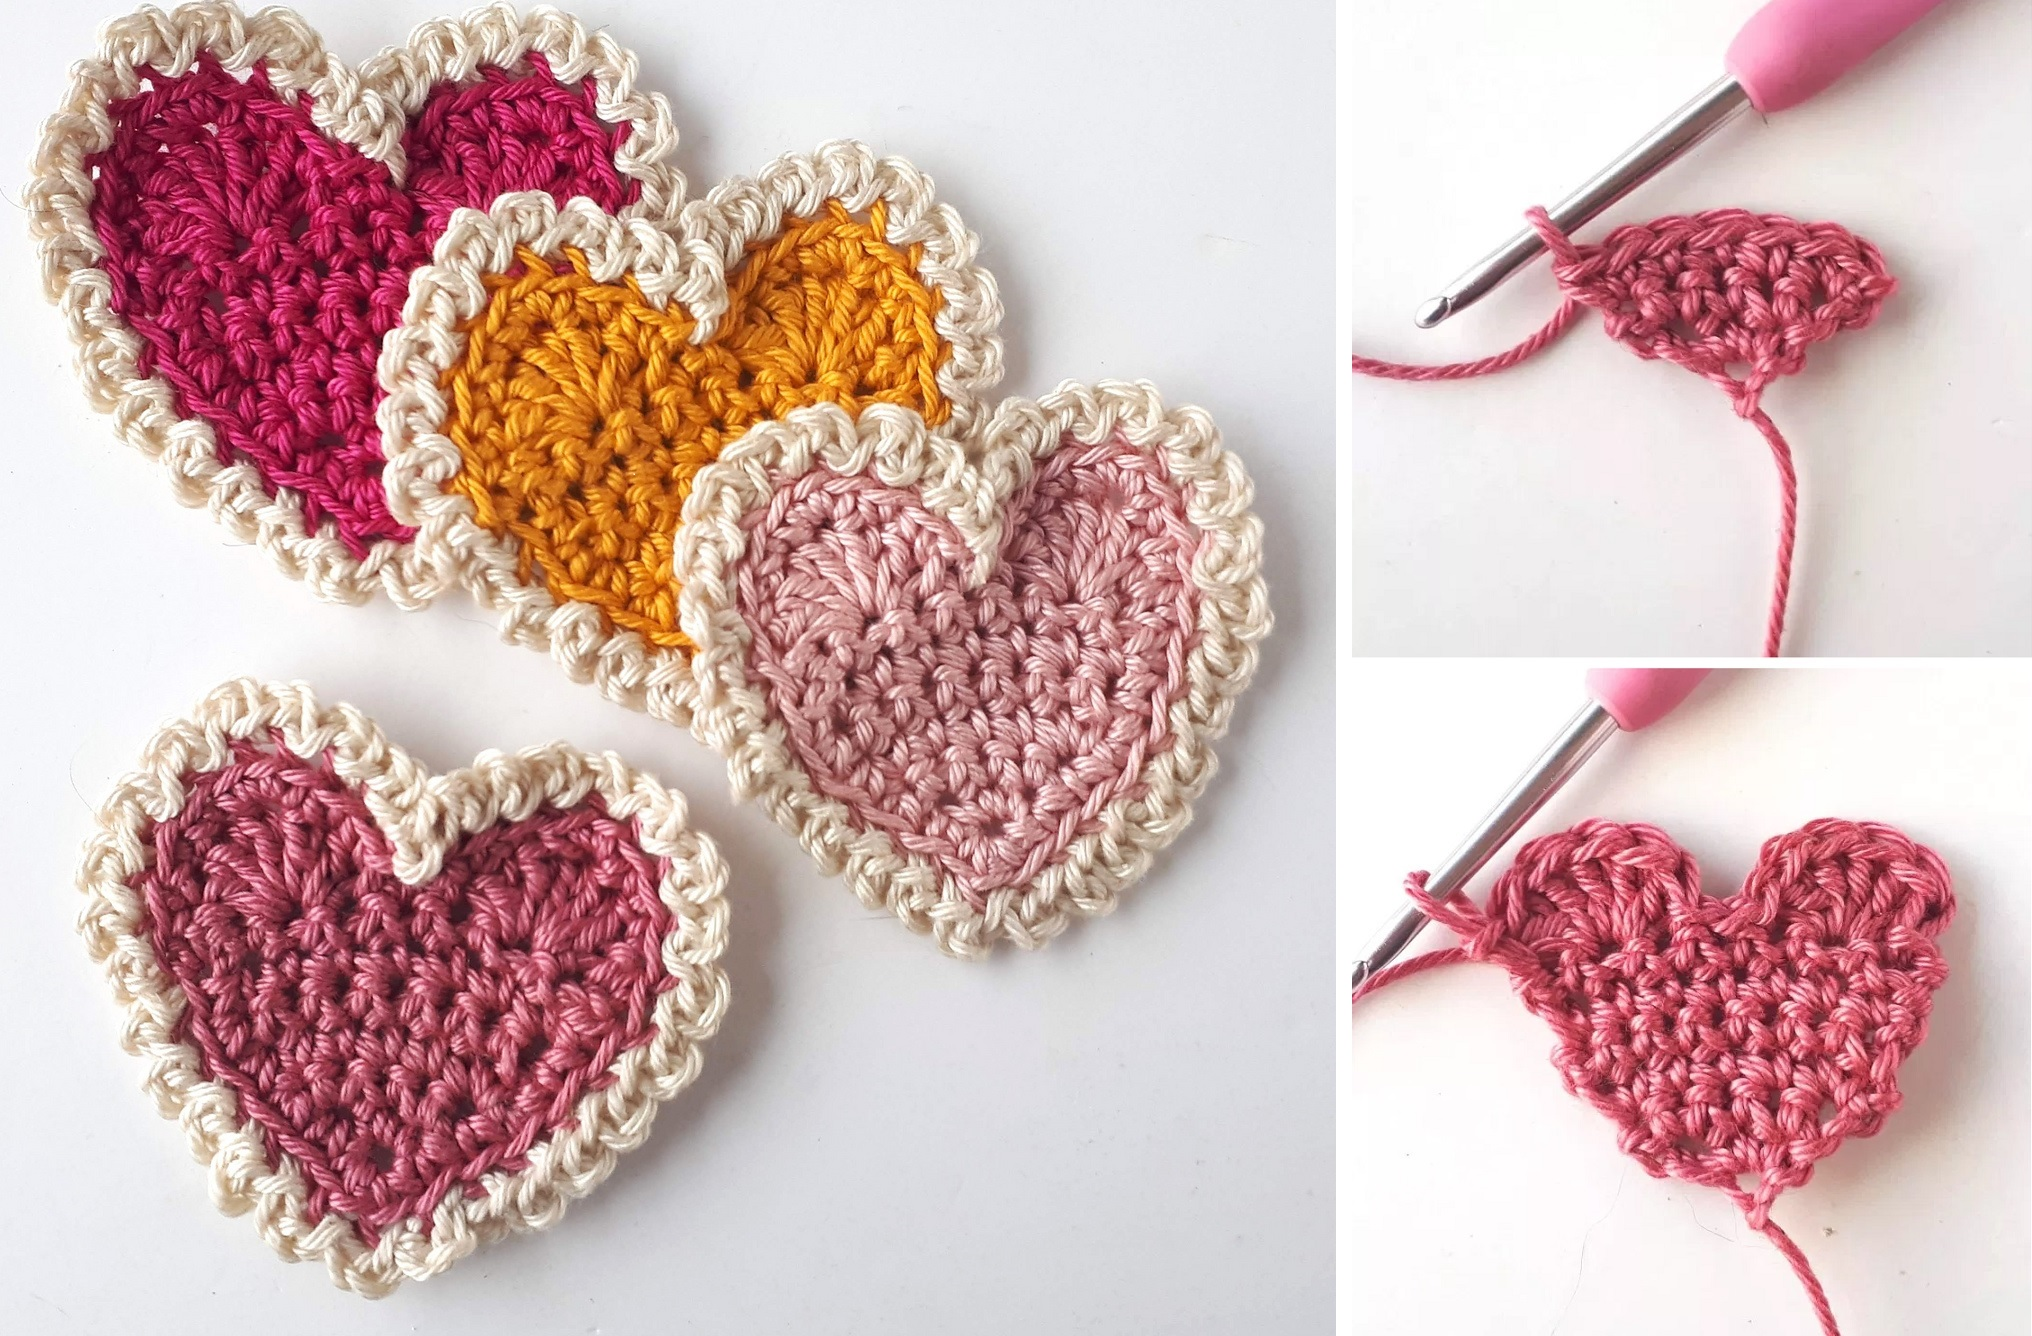 Crochet Heart - Simple Tutorial - Design Peak - Crochet Tutorial